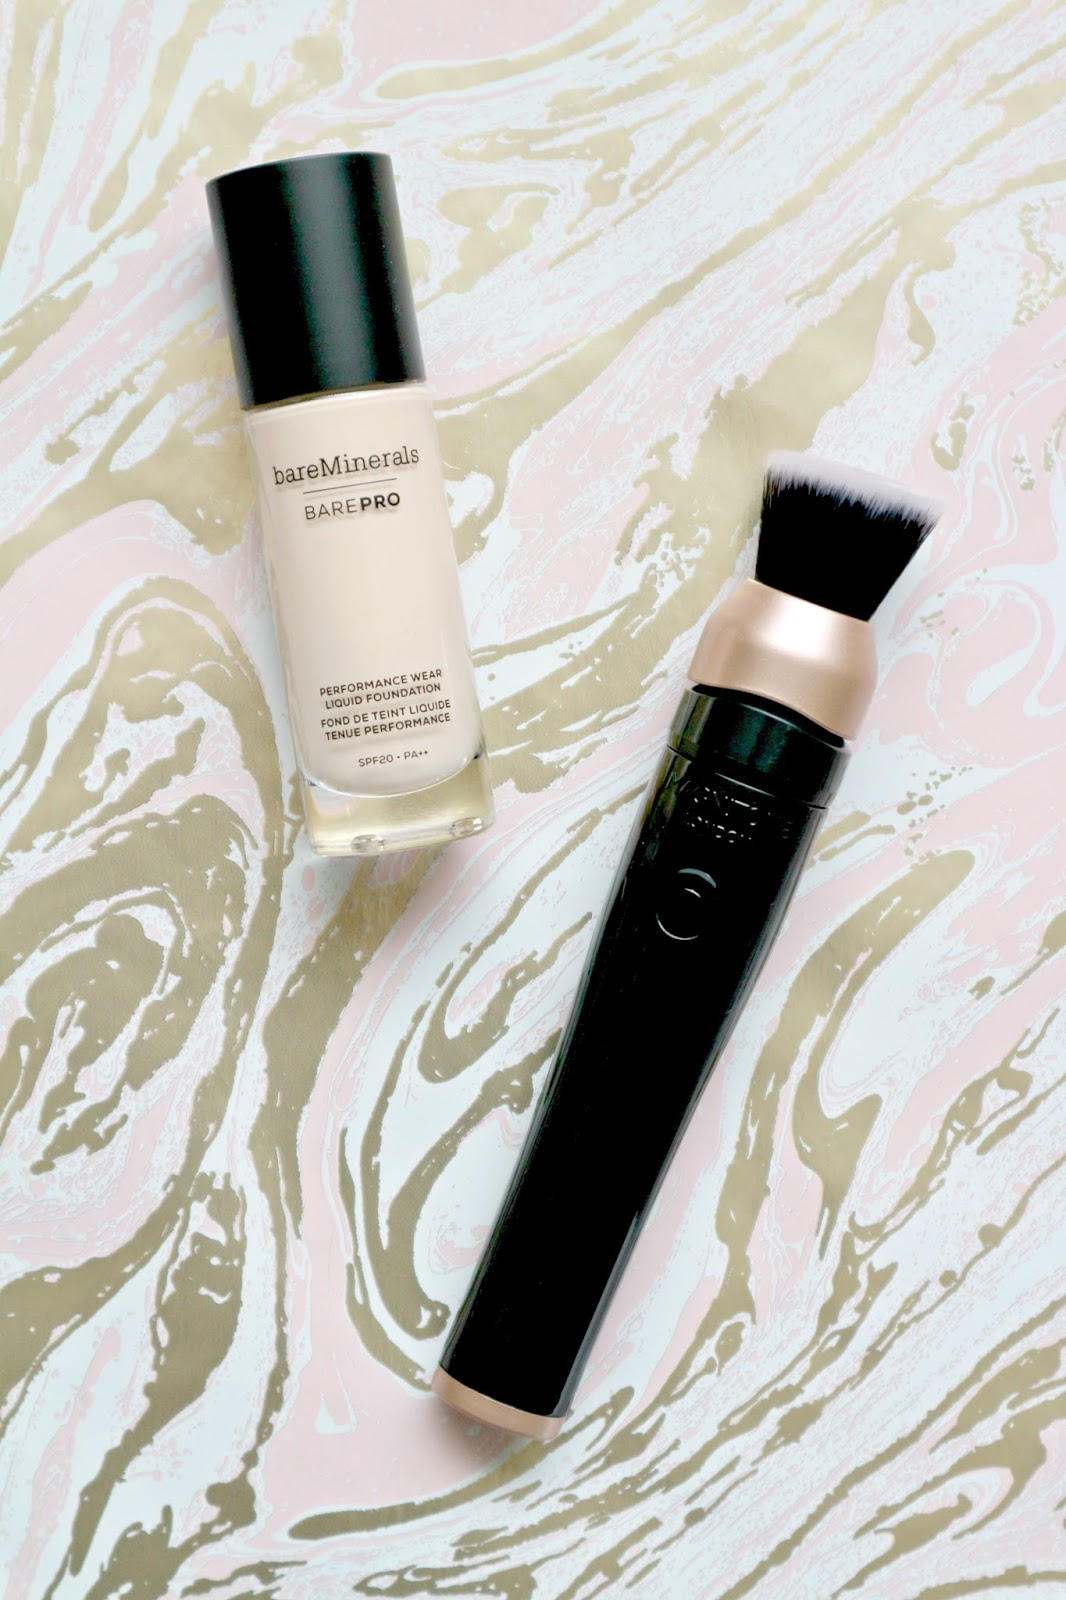 bareminerals barepro liquid foundation review